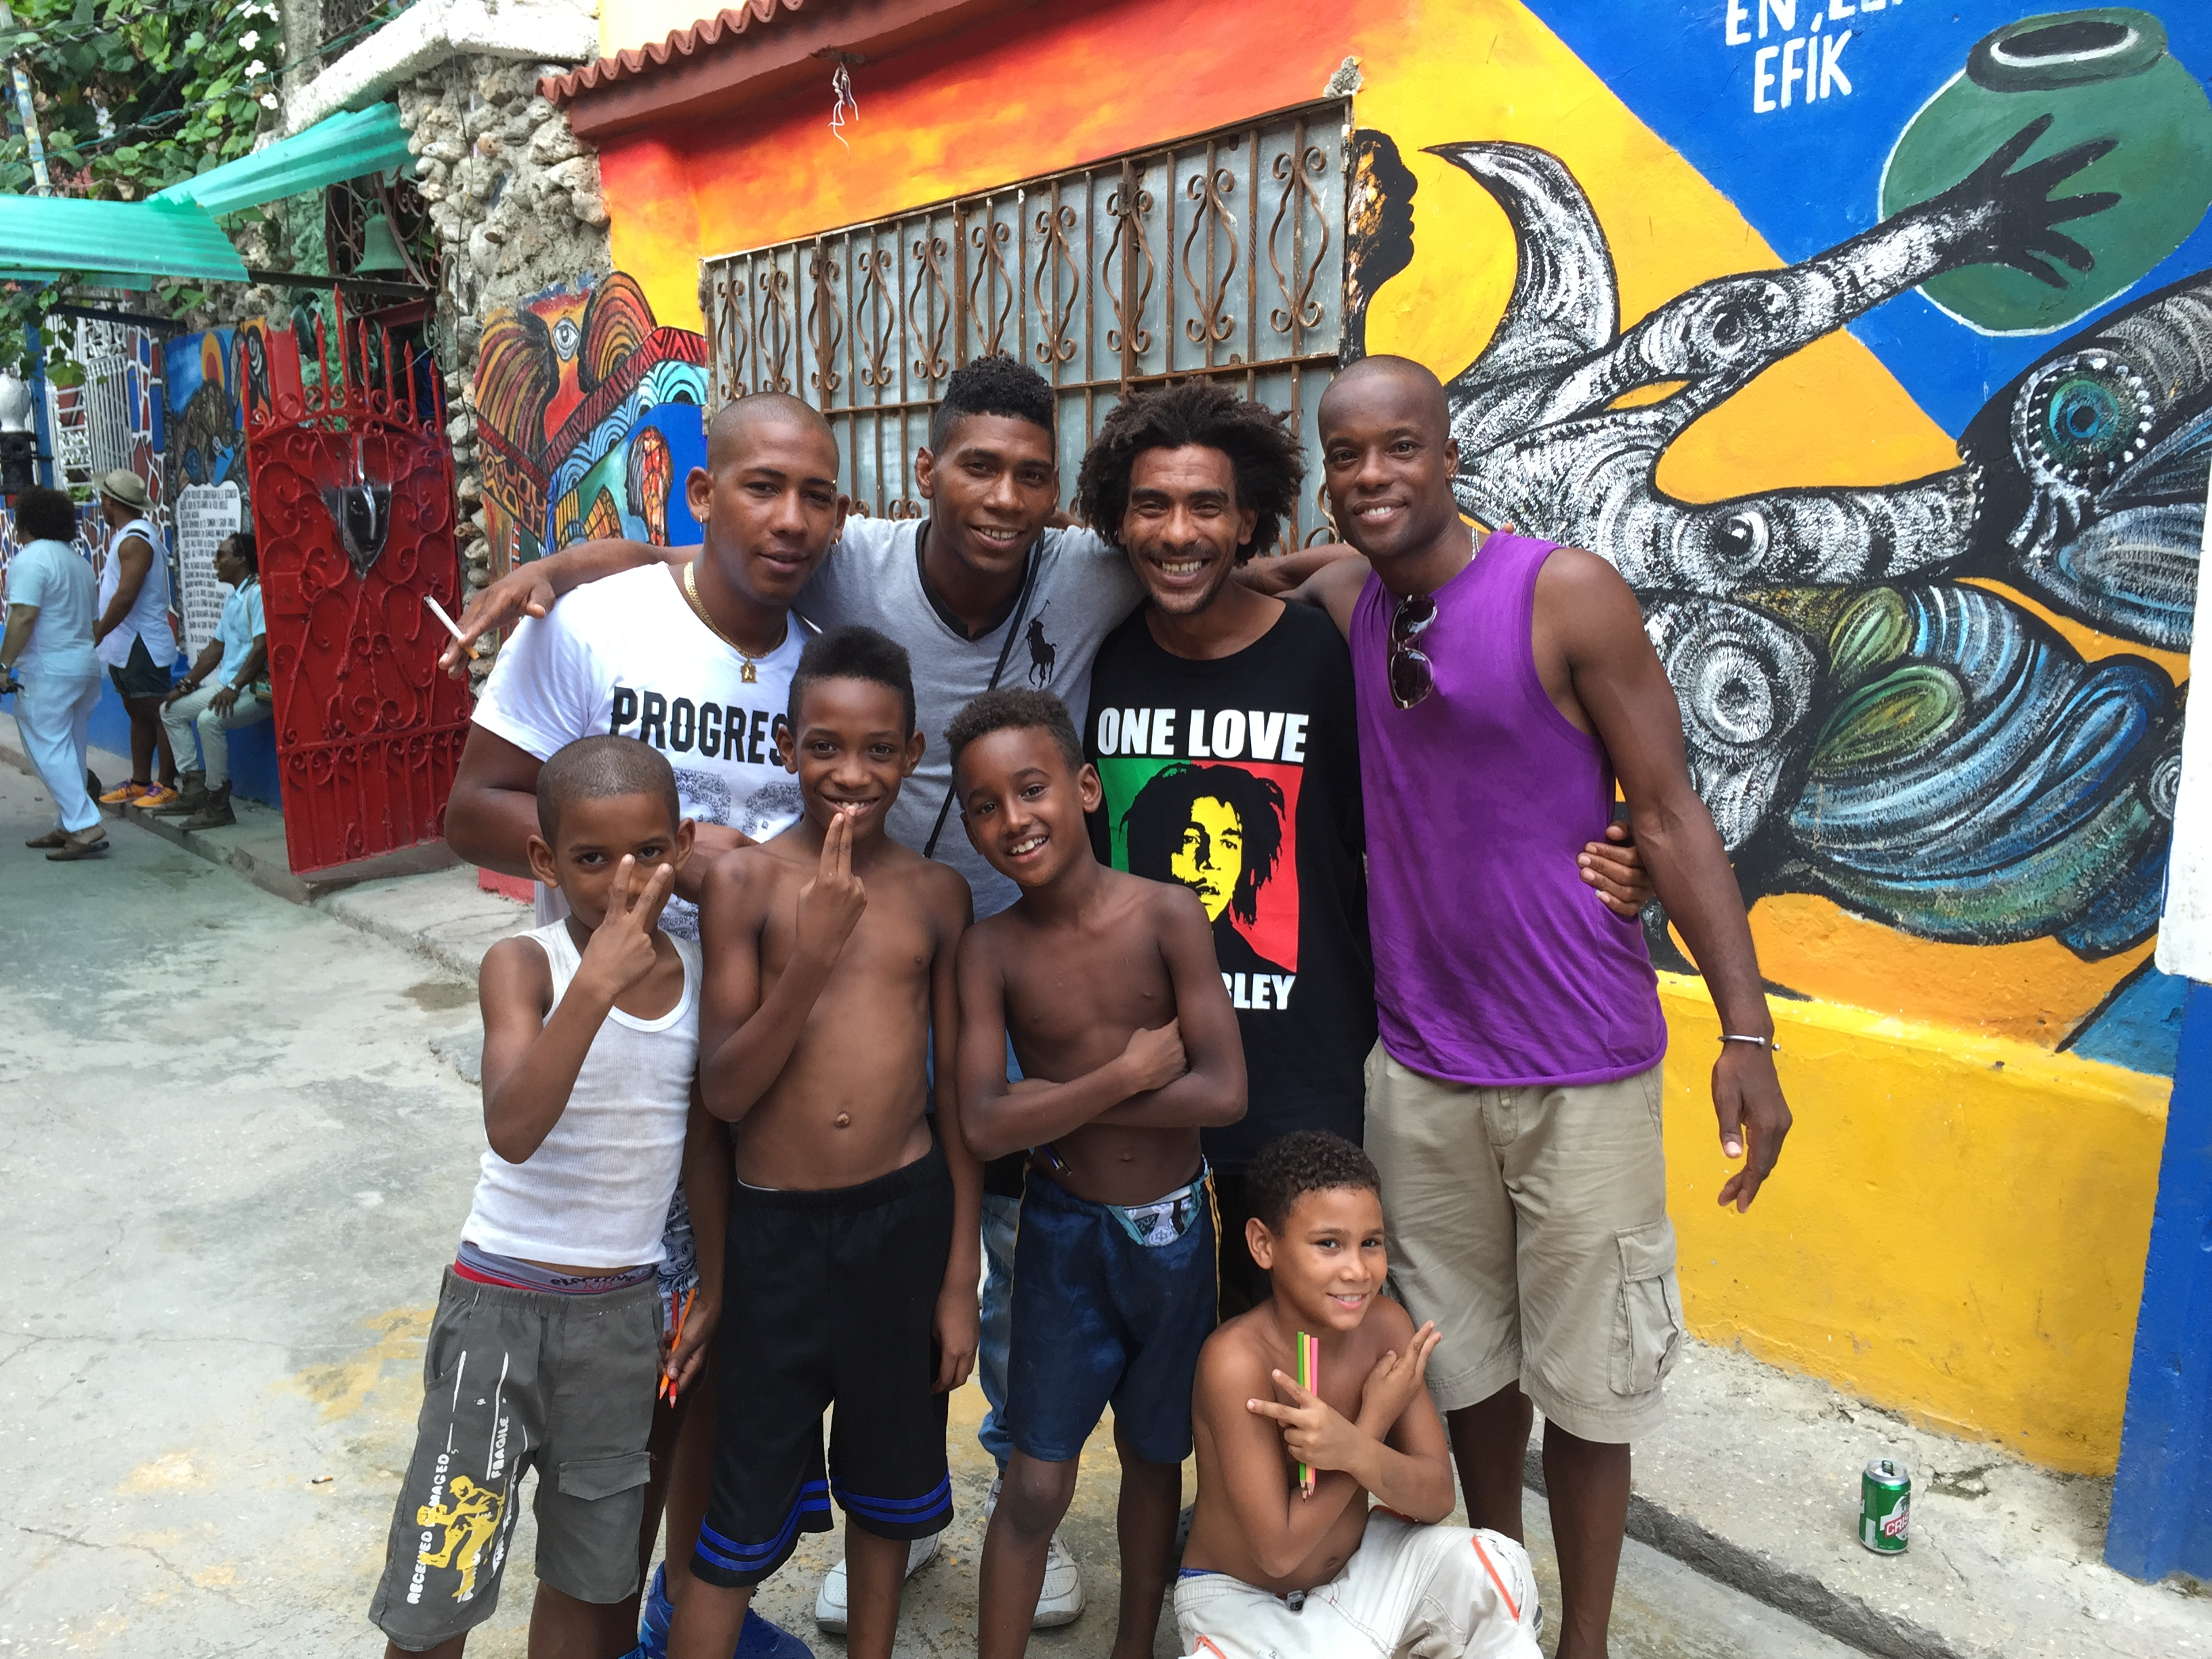 Poets, Rumberos, and kids hanging out at the famous Callejon de Hamel in Centro Habana